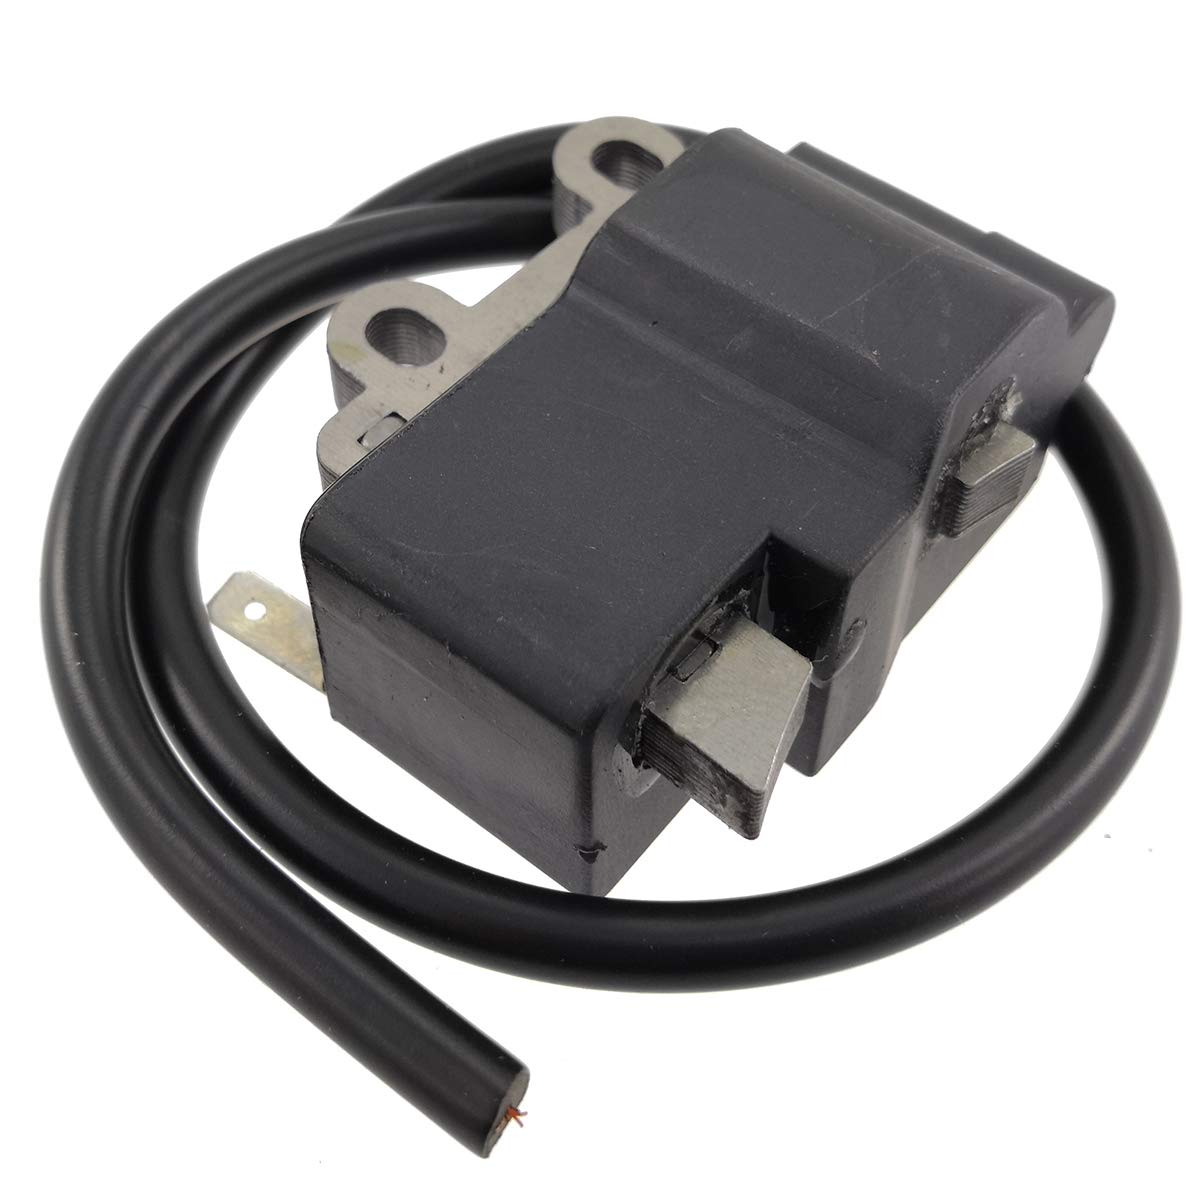 Ignition Coil for ECHO #A411000251 SRM-266S SRM-265T PPT265 PPT266 HCA265 Brand New